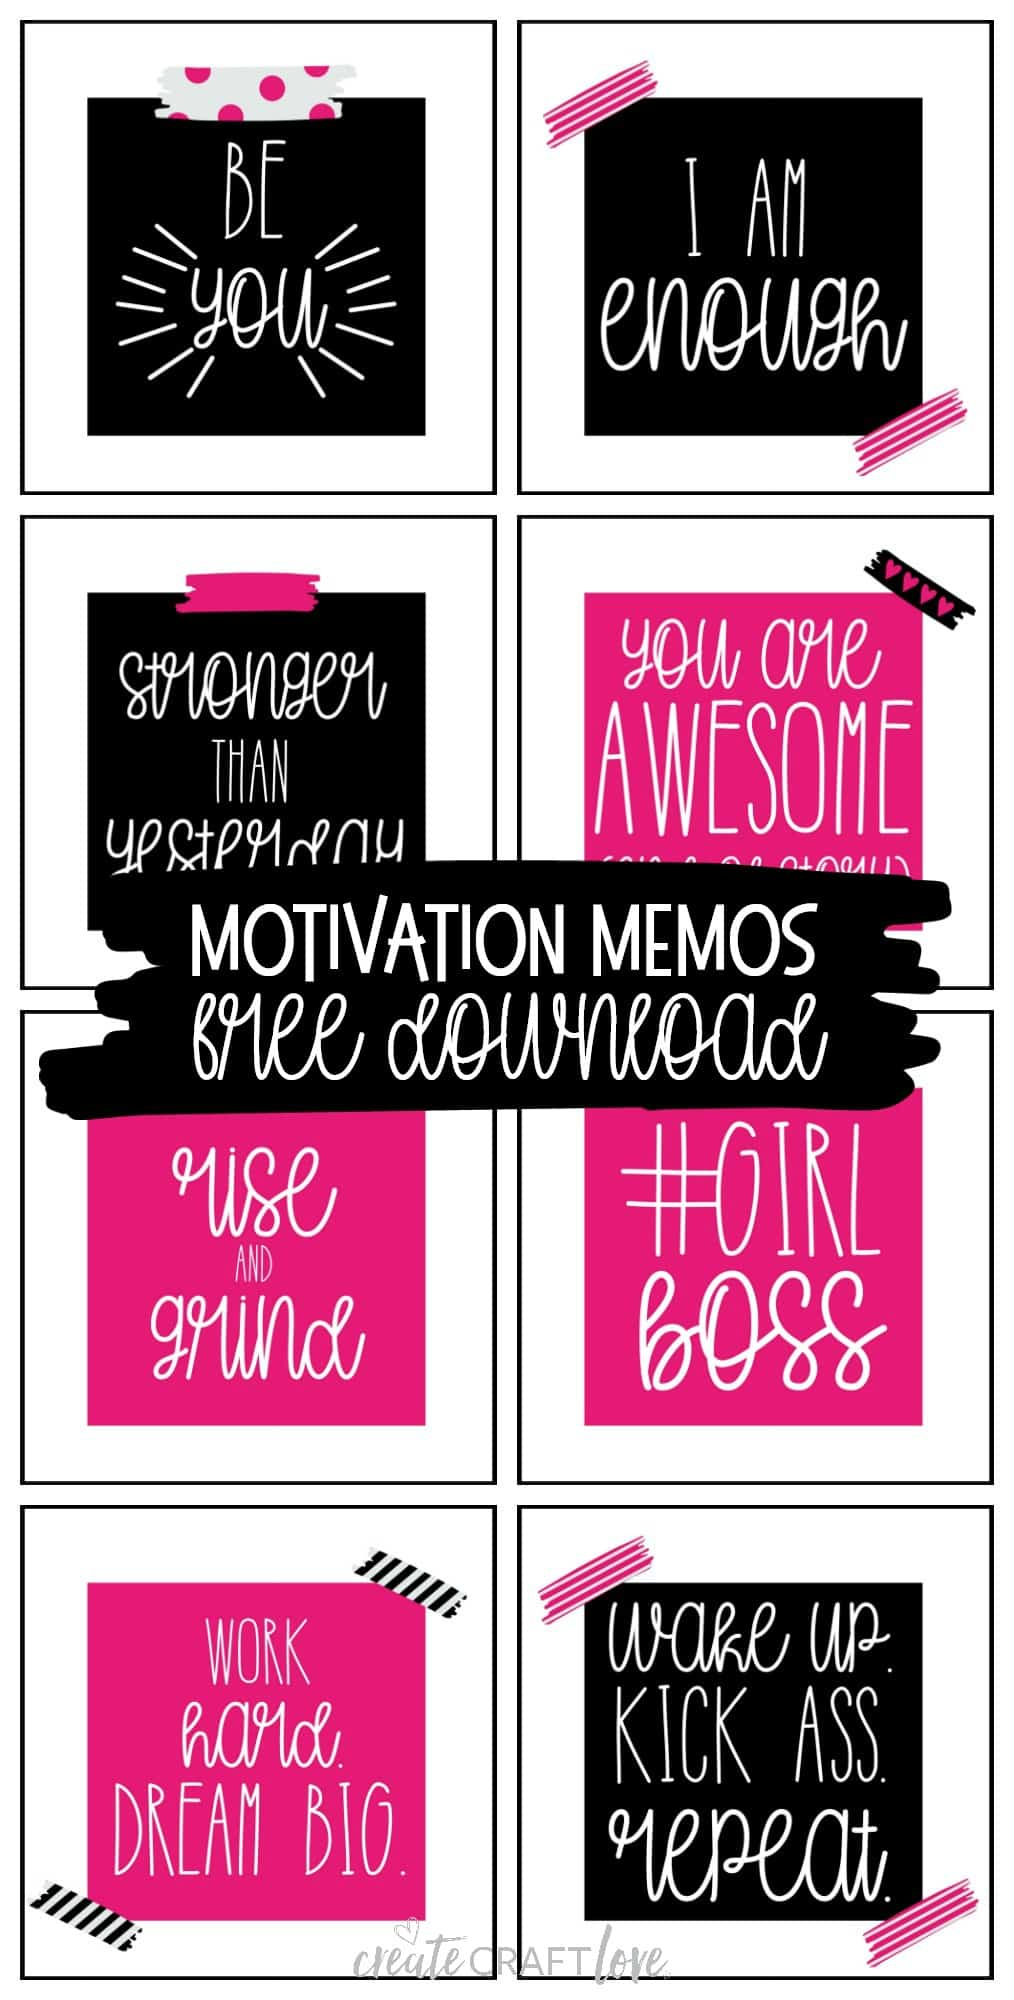 Lift up your fellow girl bosses with these encouraging Motivation Memos!